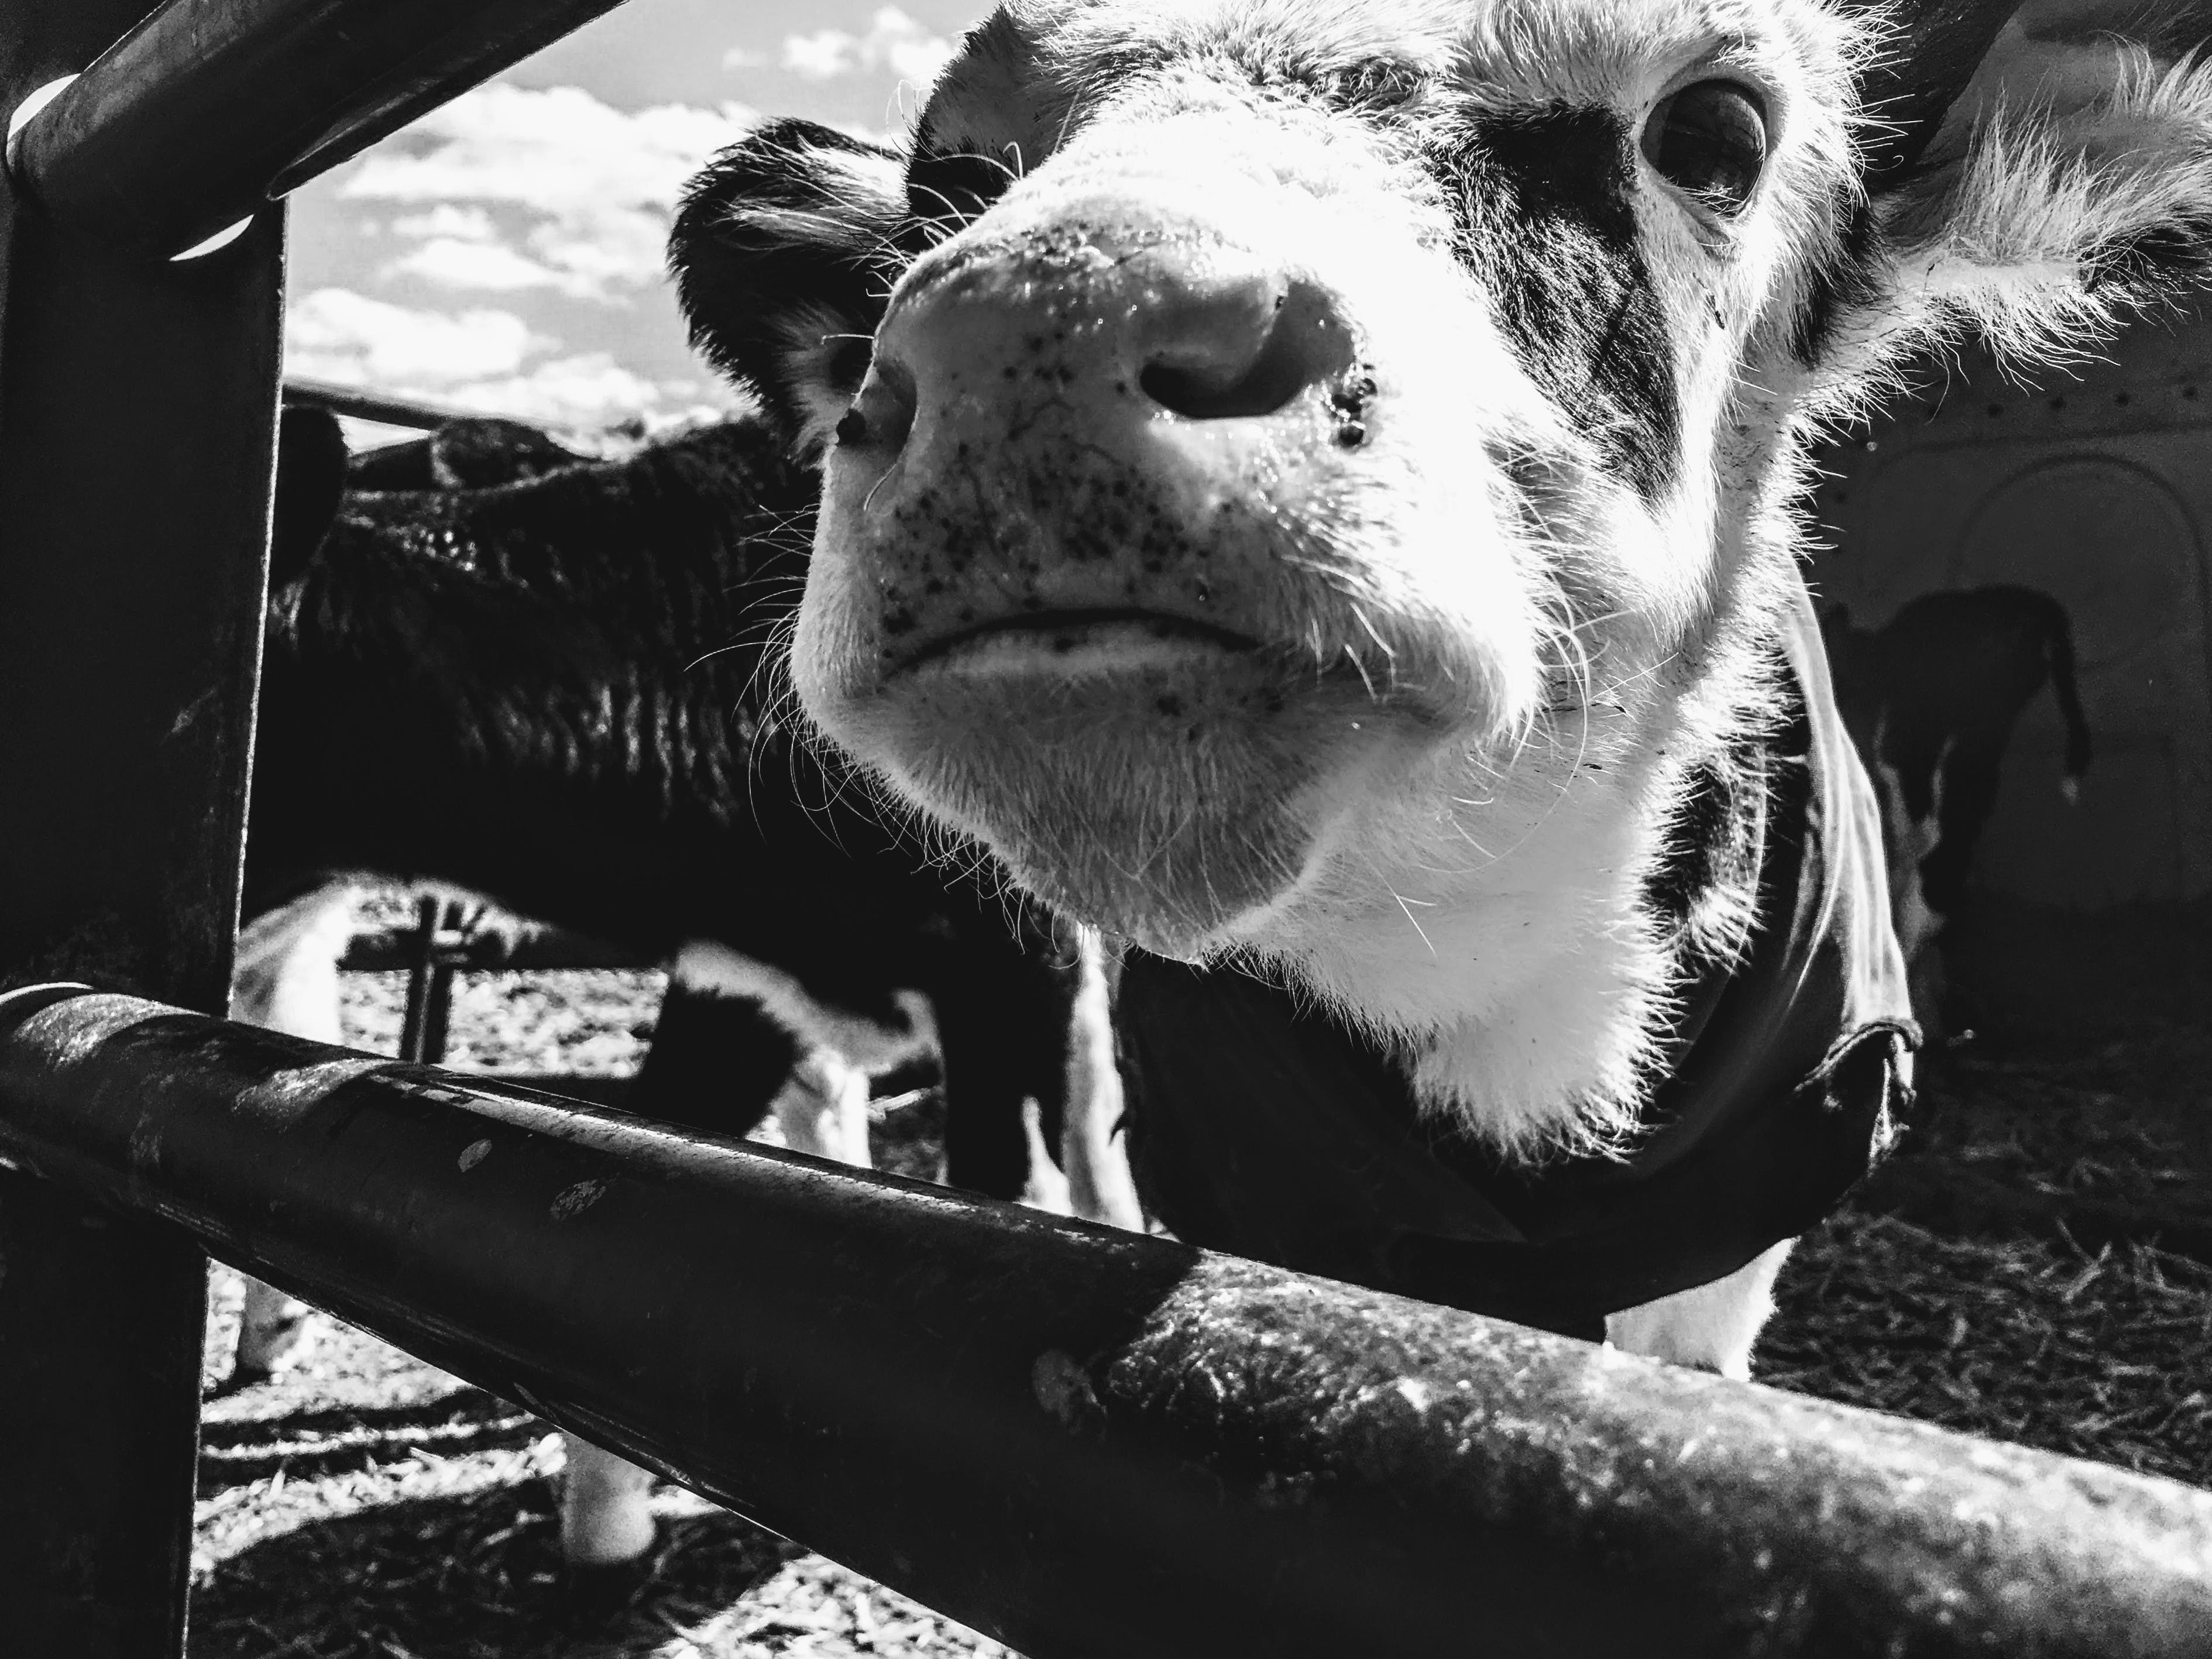 Grayscale Photography of Cattle